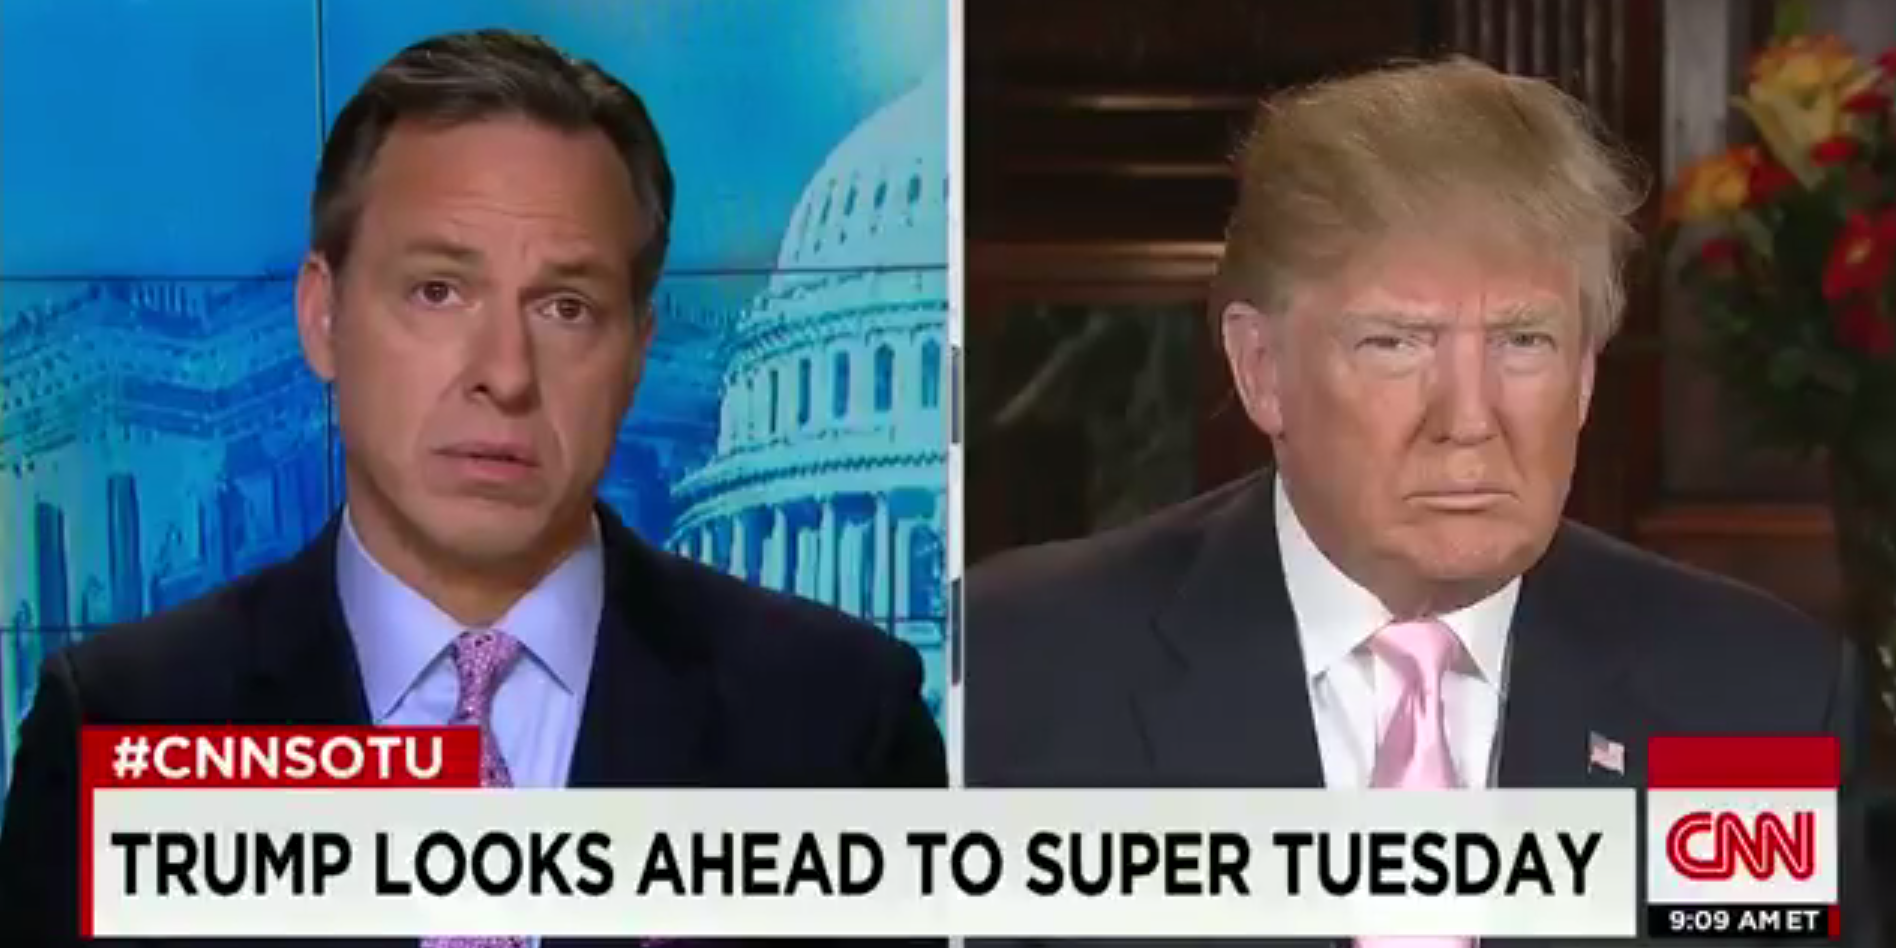 Donald Trump Jake Tapper